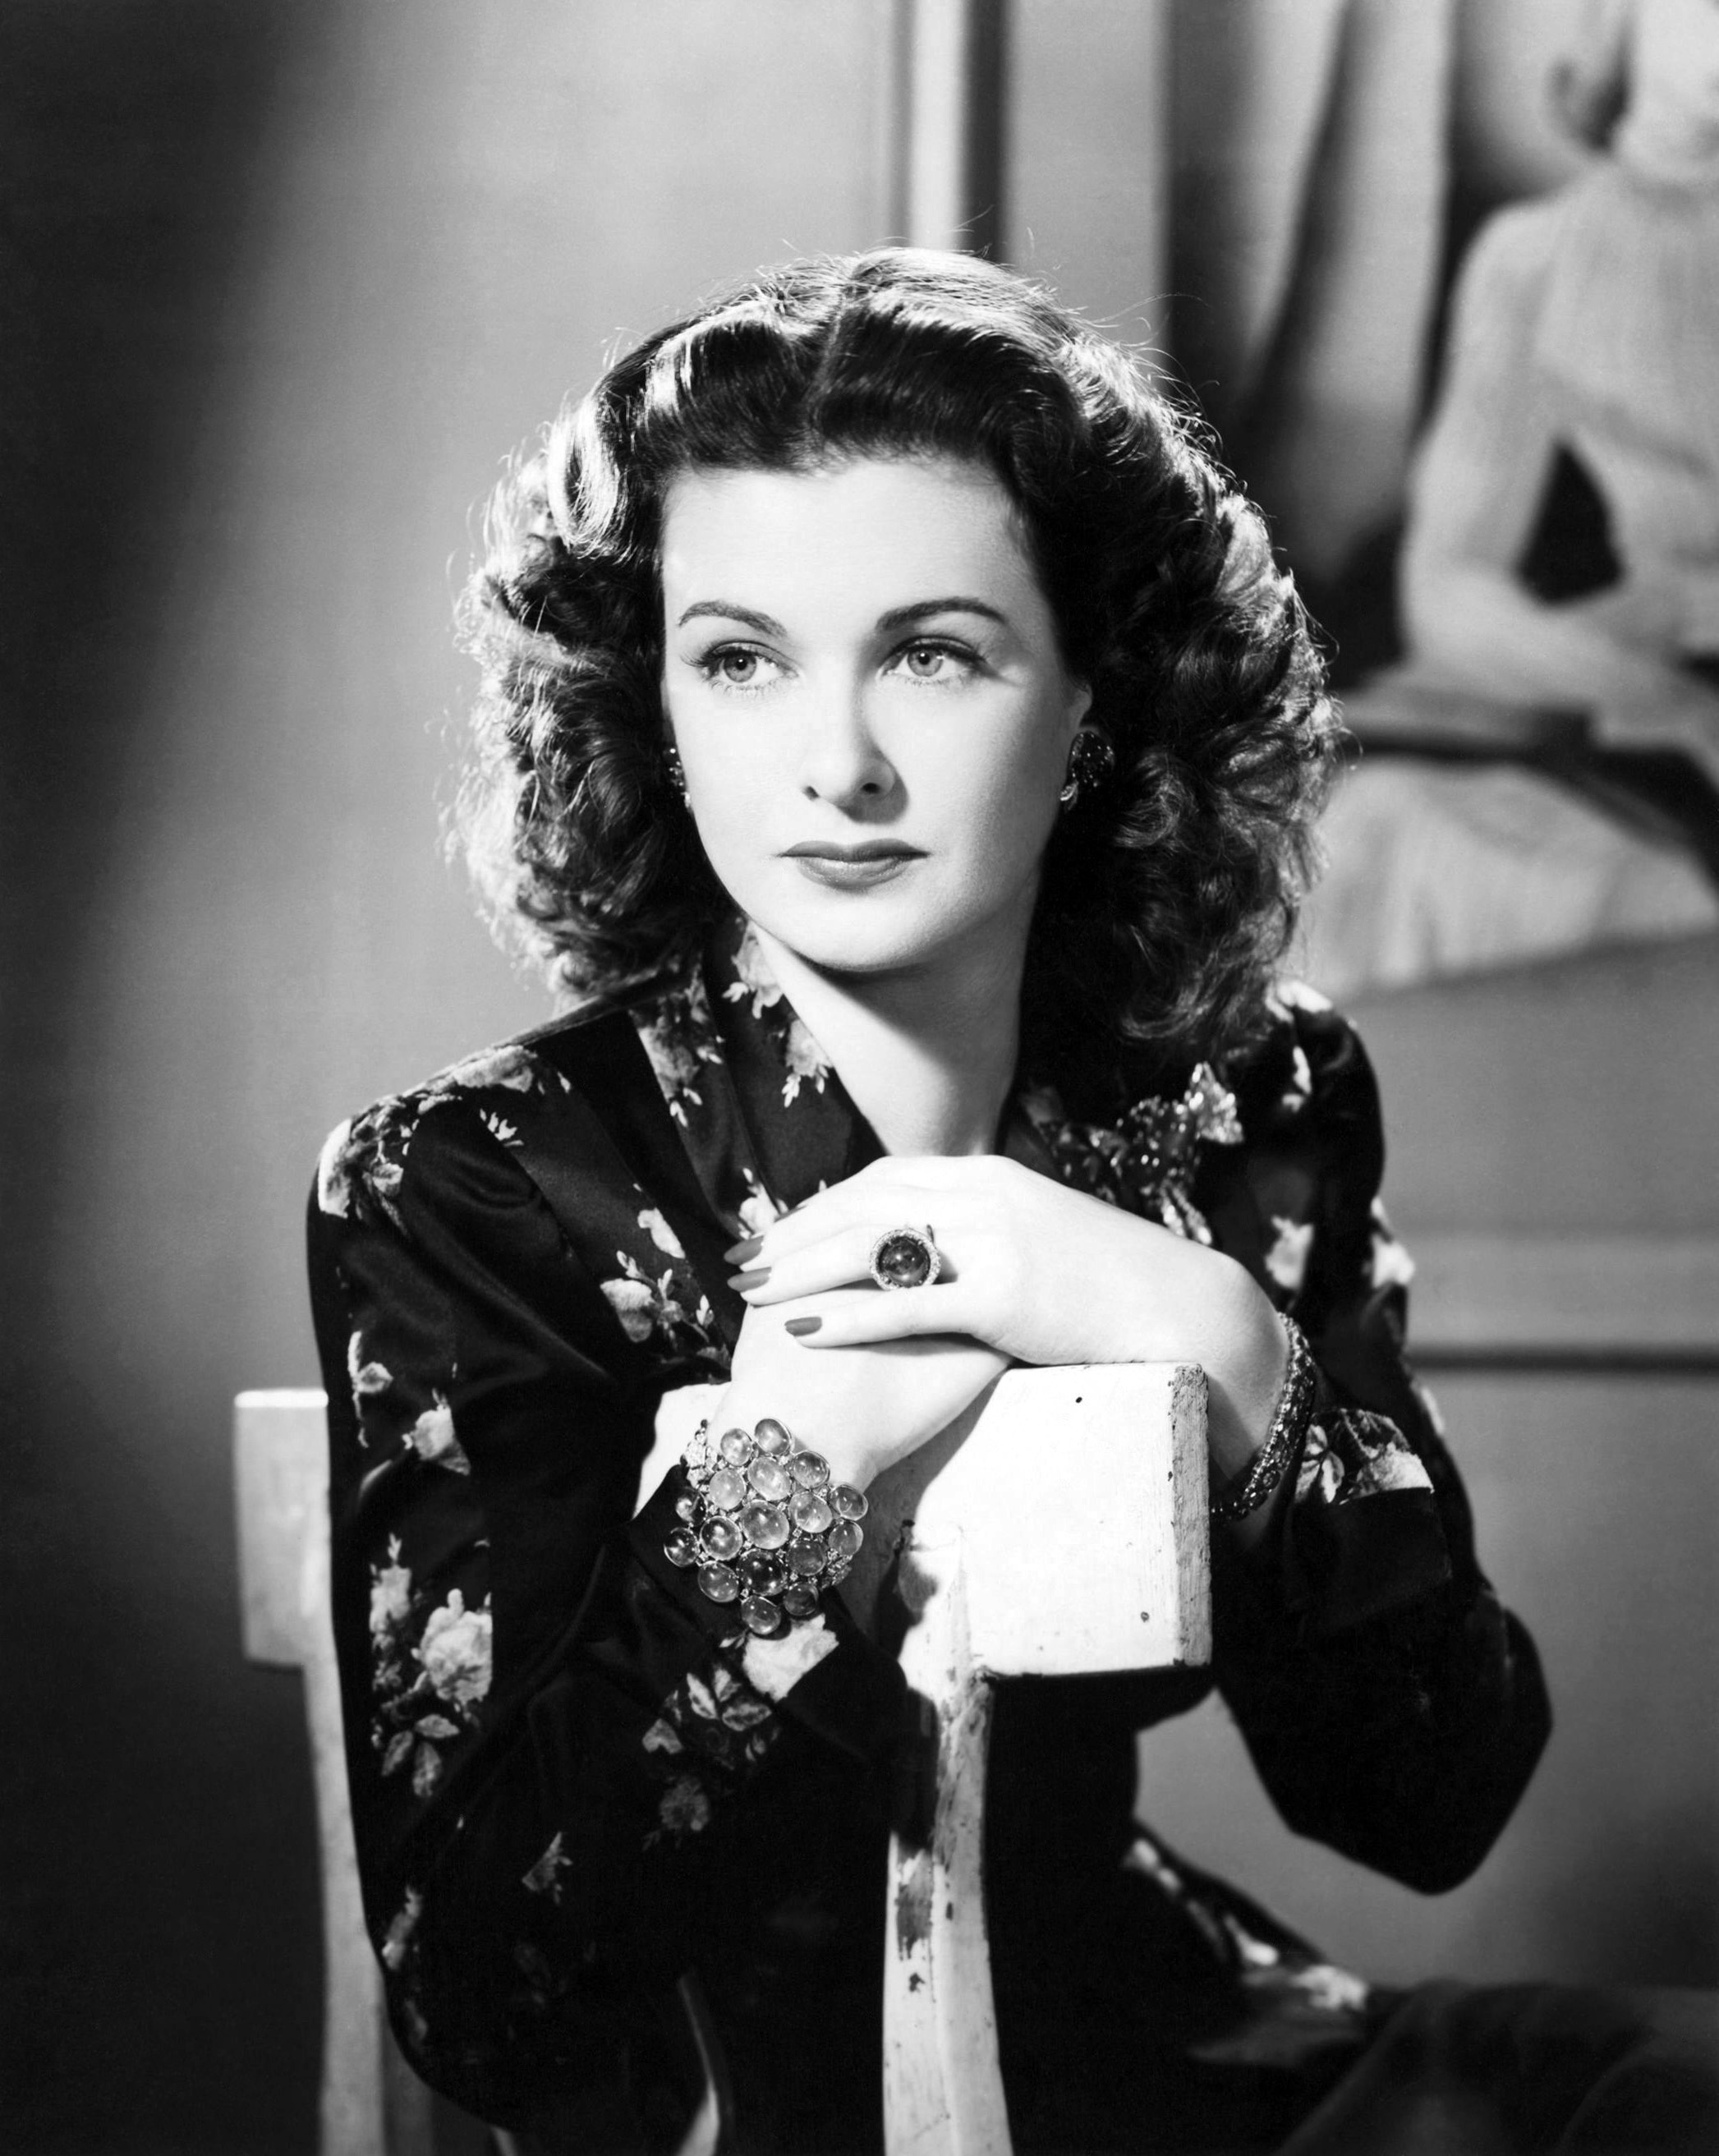 Joan Bennett in The Woman in the Window (1944)